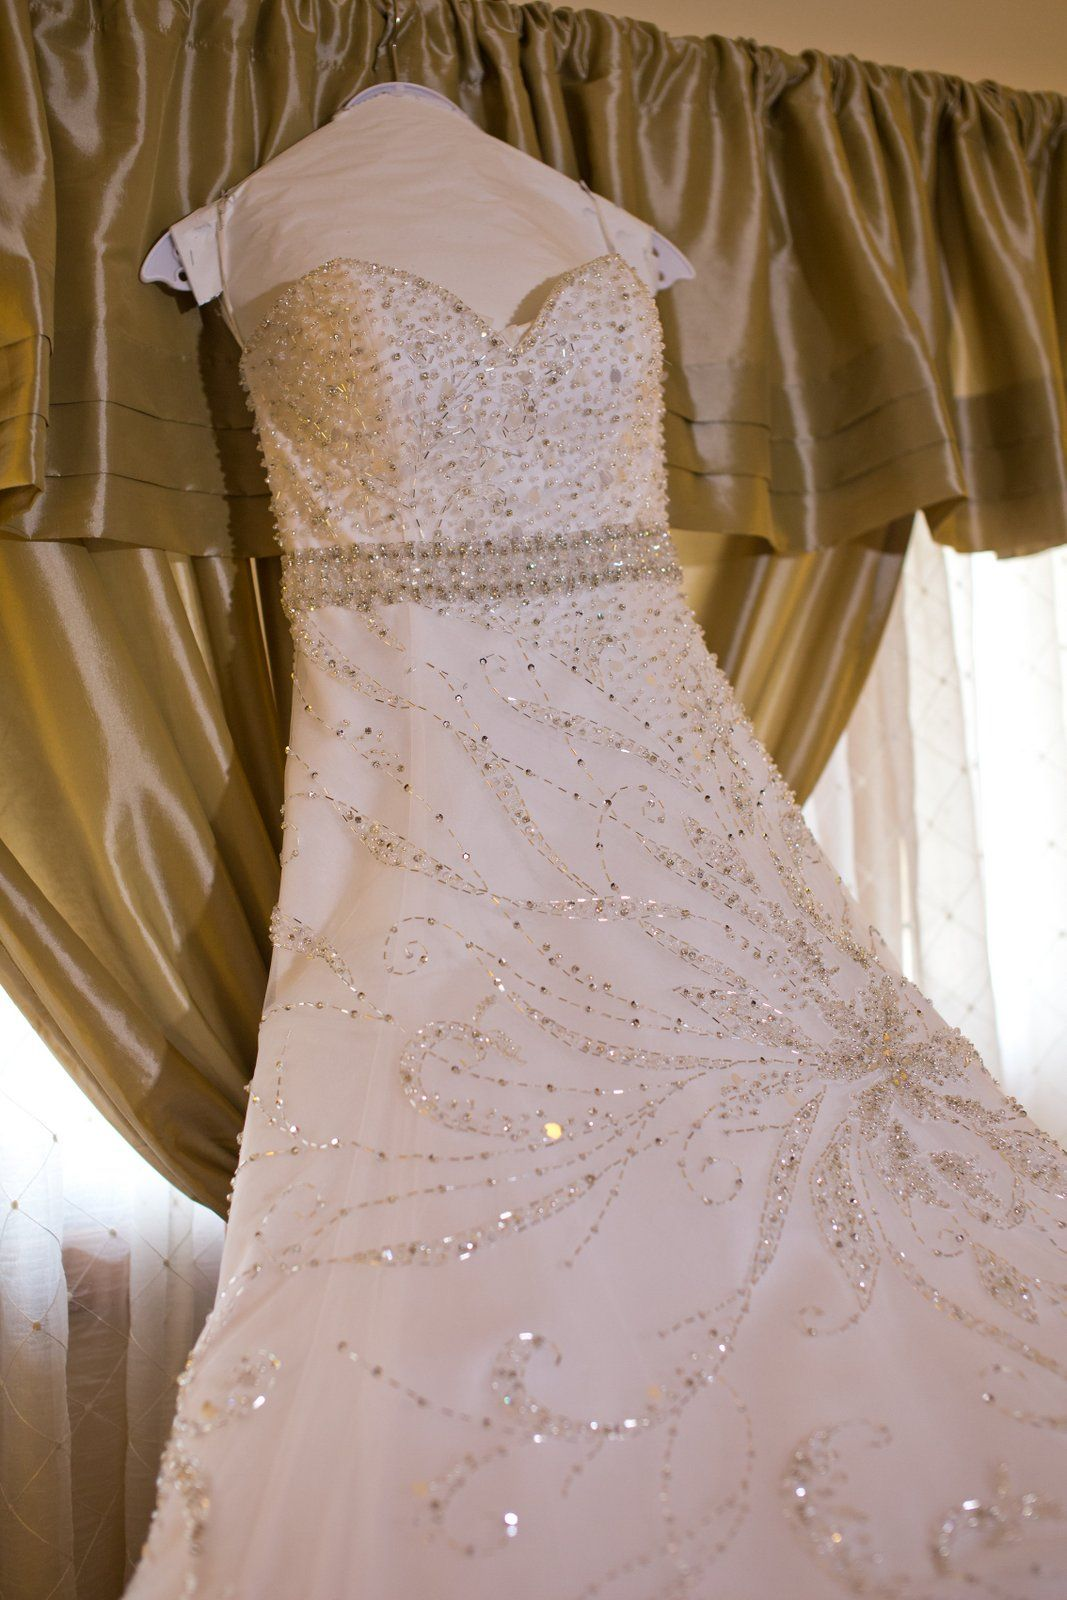 new years eve wedding dress by demitrios from macys